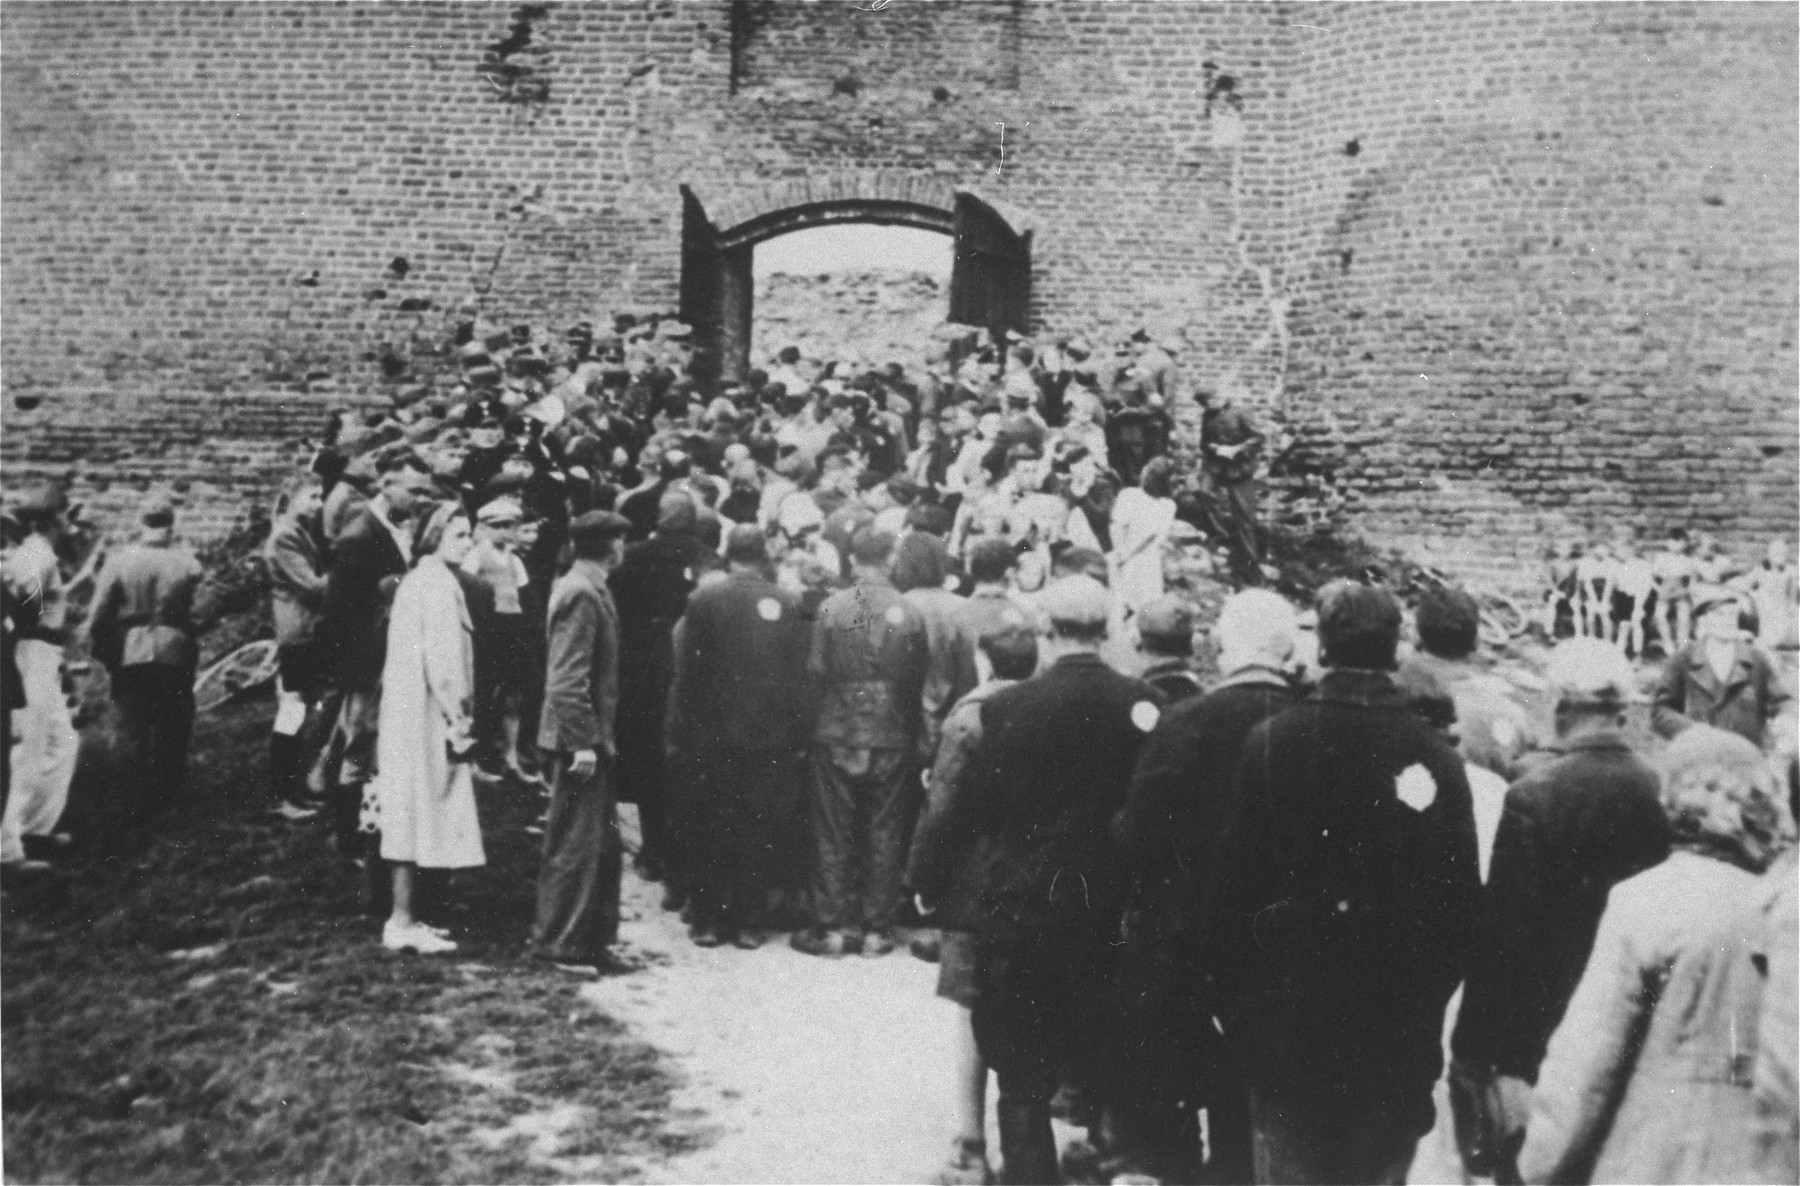 Jews from the Ciechanow ghetto are assembled in a fortress.